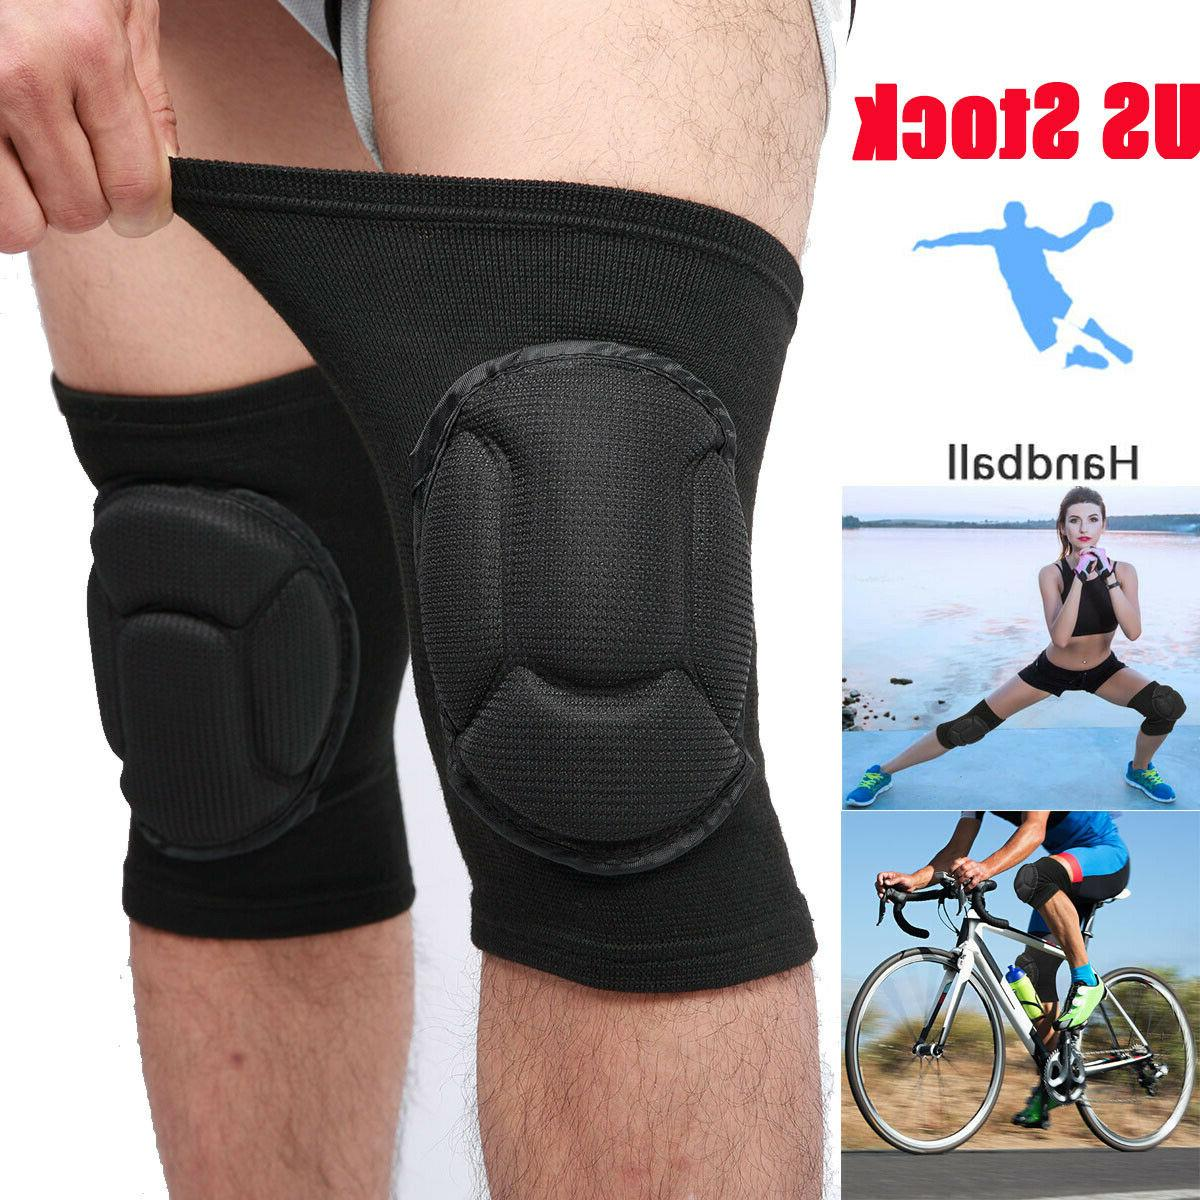 Pair Pads Kneelet Protective Gear for Safety Gardening US